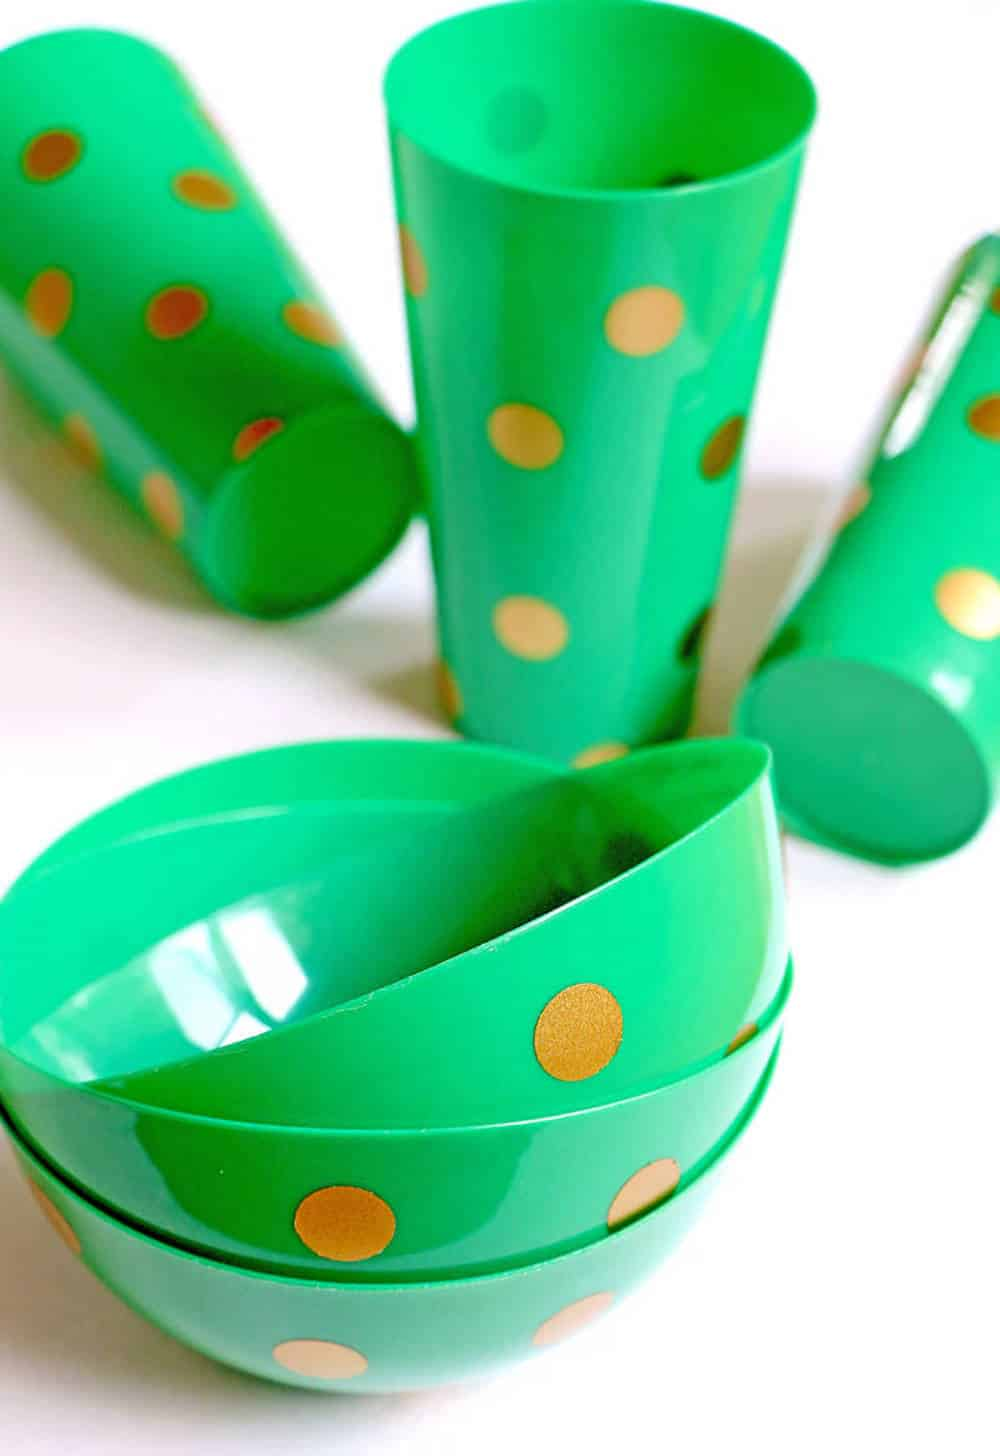 Vinyl Craft: Kate Spade Inspired Gold Polka Dot Tumblers and Bowls